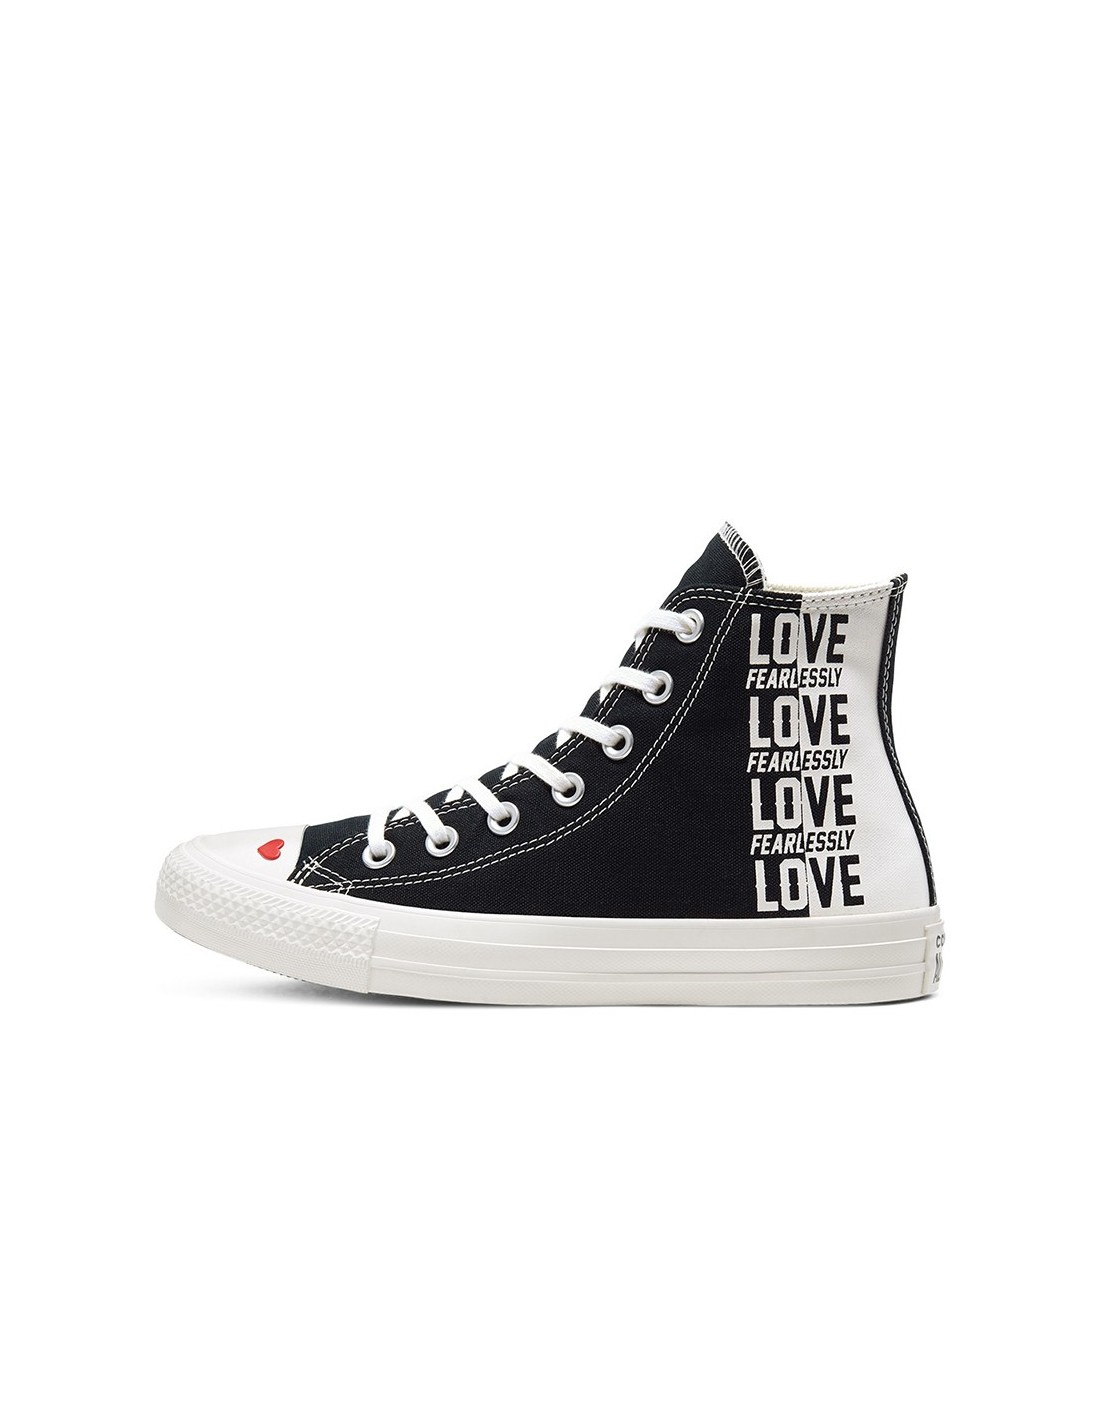 New Converse Chuck Taylor Love Fearlessly 567309C available